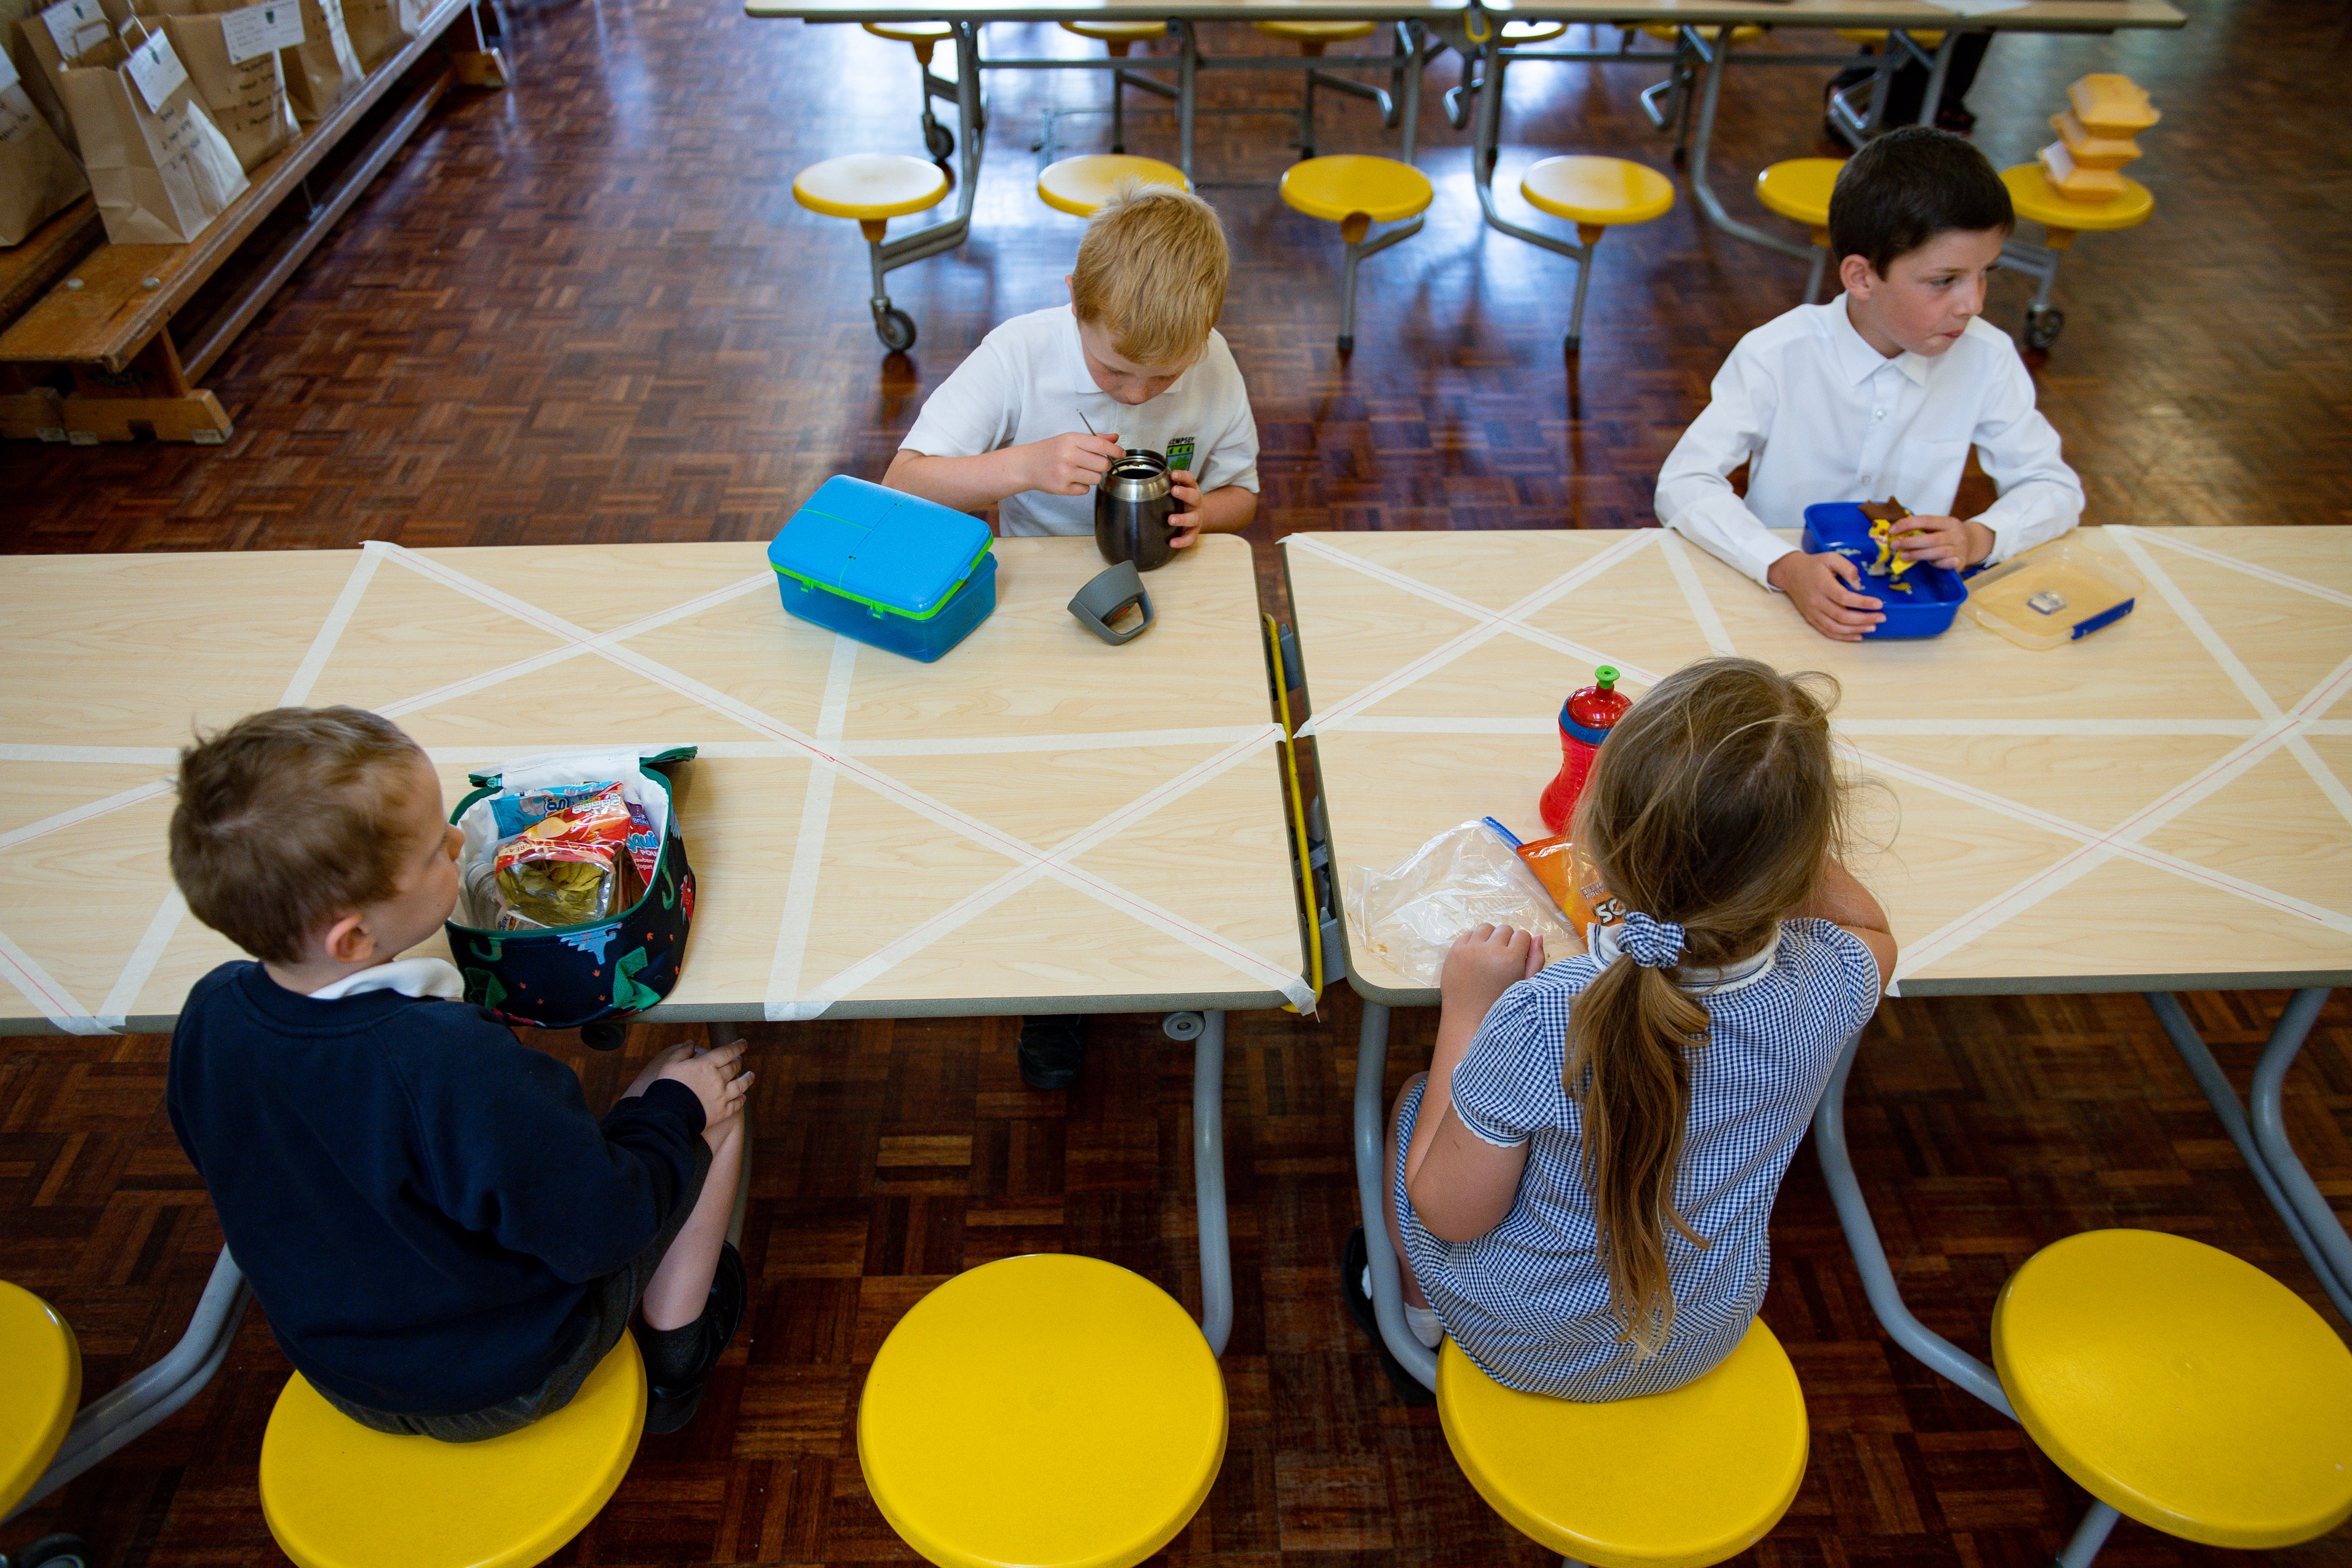 A community rallies round against child hunger